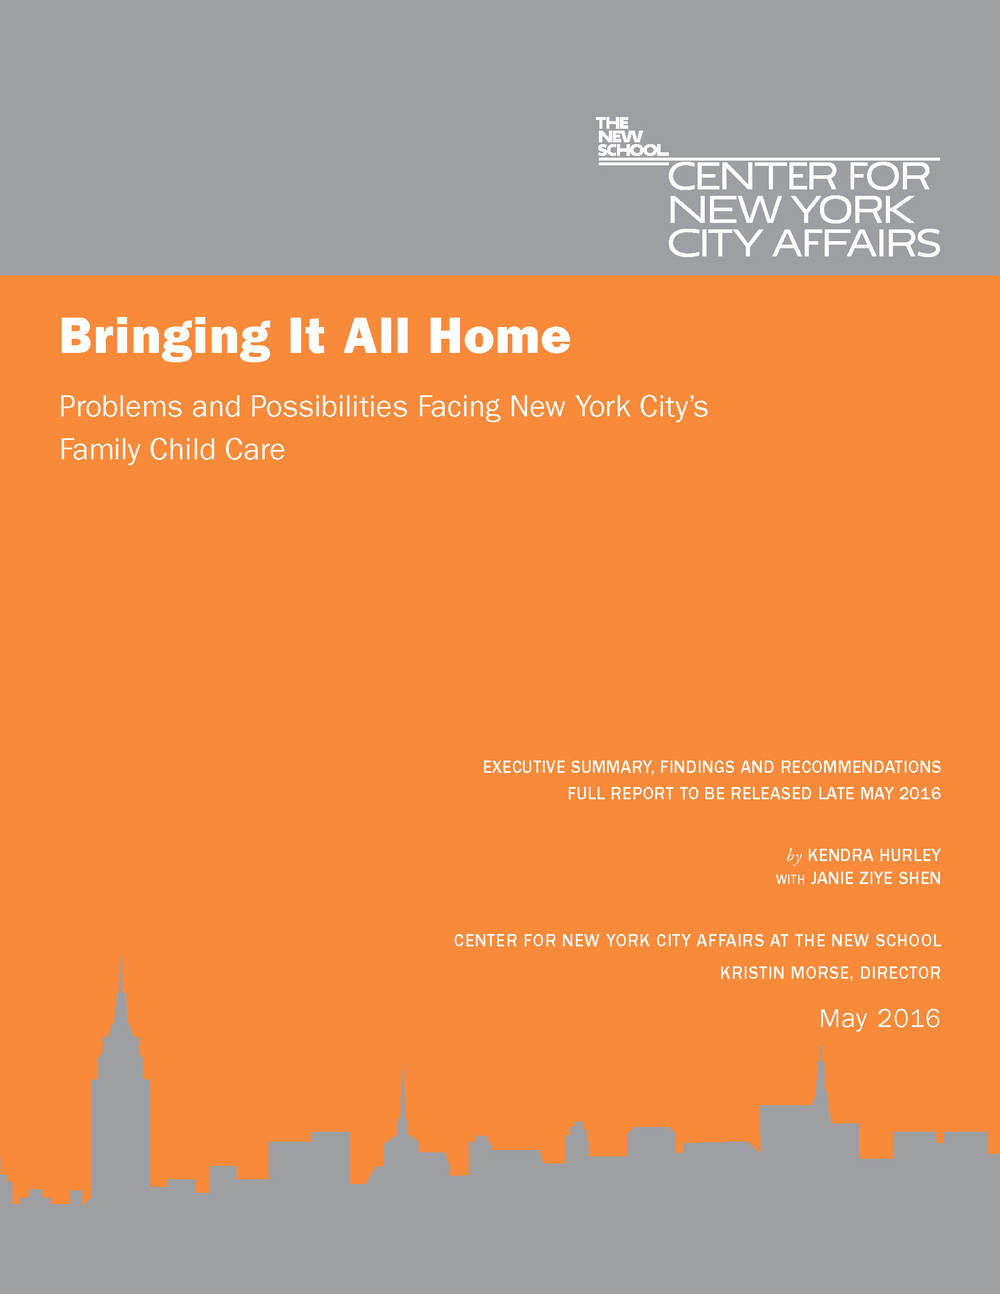 cf07ad0170 Bringing It All Home: Problems and Possibilities Facing NYC's Family Child  Care (2016)